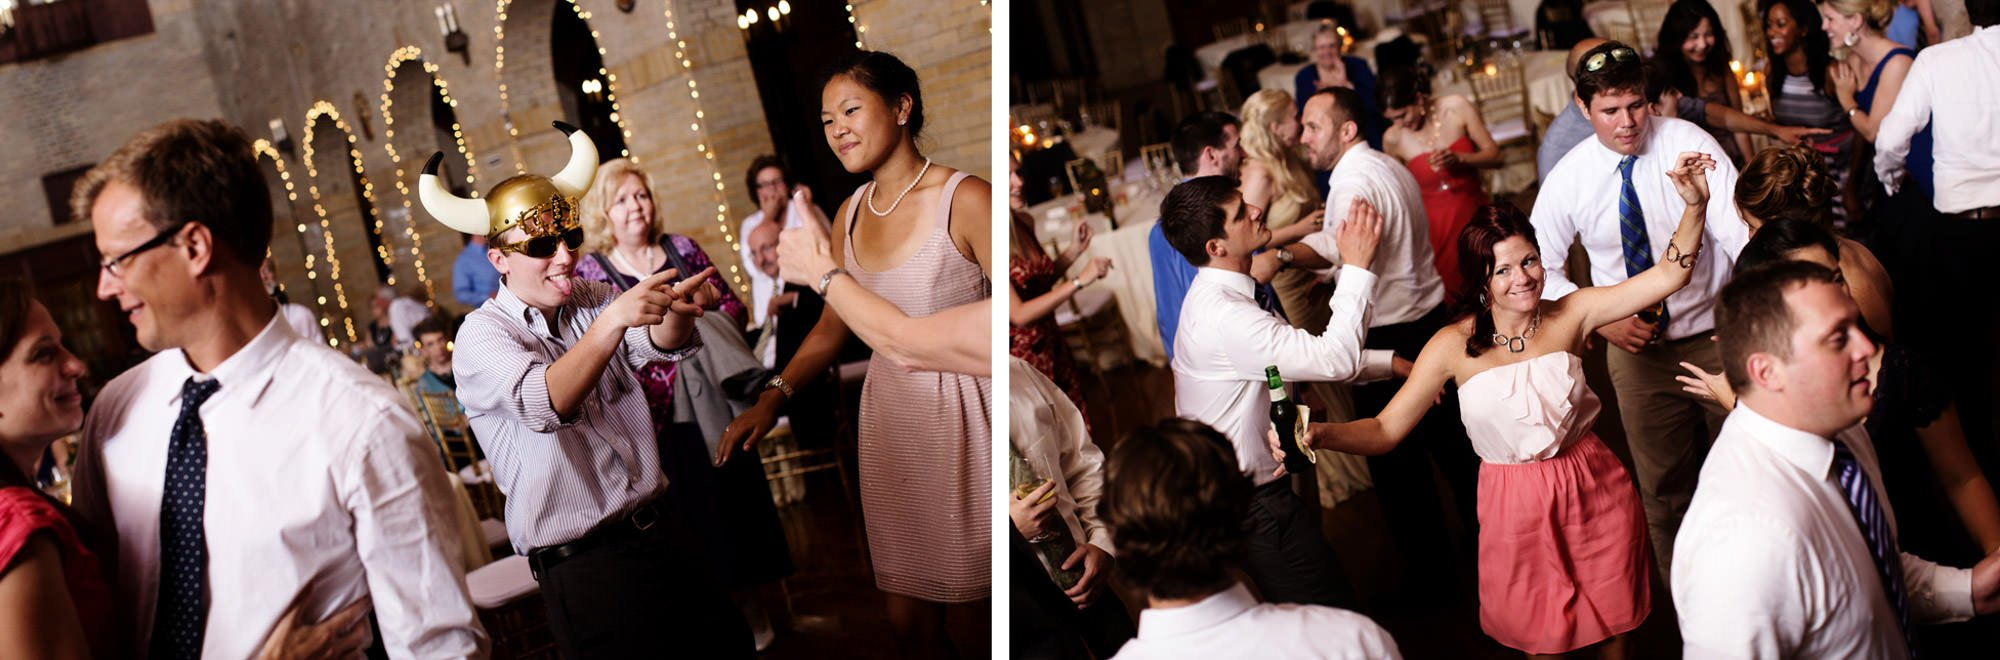 Guests enjoy the reception during this St Francis Hall wedding.